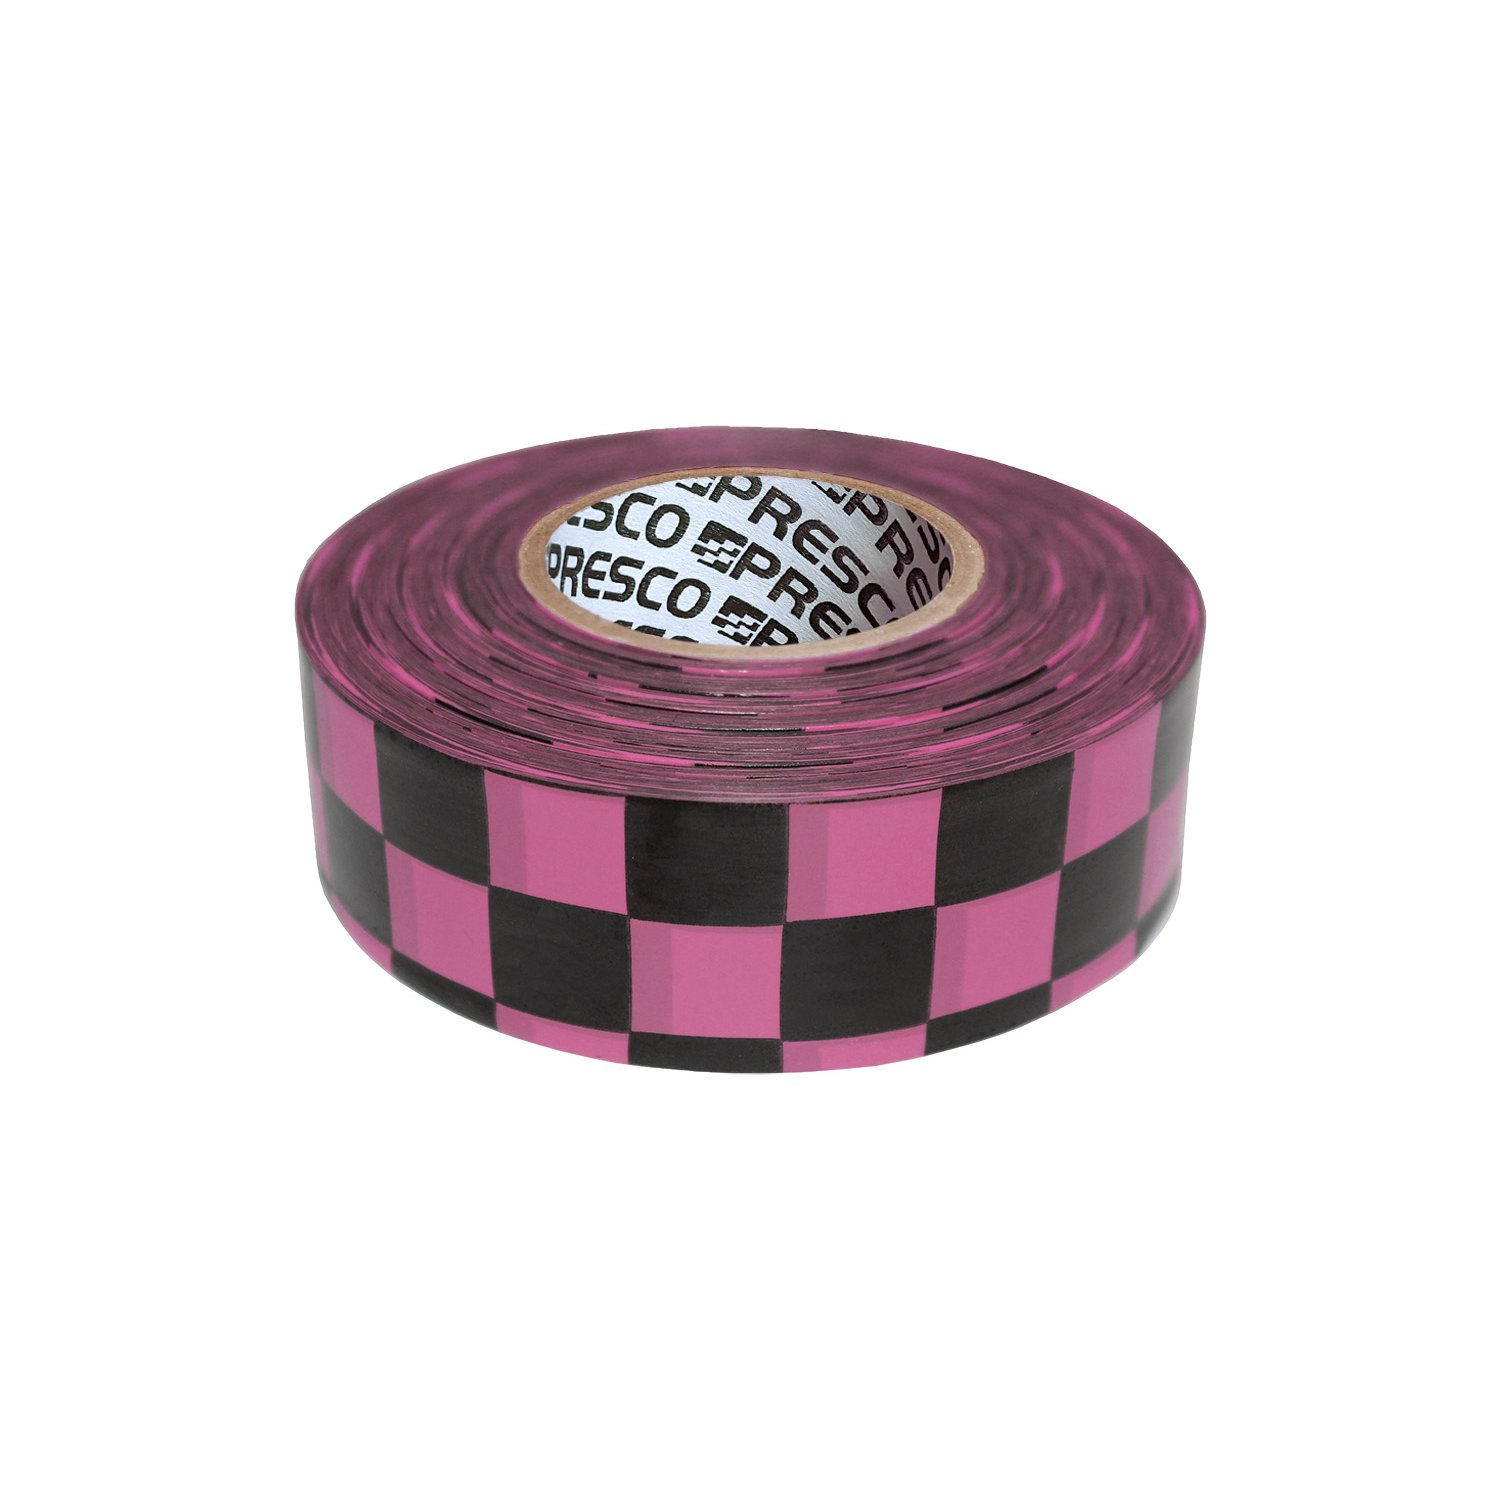 Presco Checkerboard Patterned Roll Flaggingテープ 1-3/16 in. x 150 ft. B0777S934S 10463 Neon Pink and Black Checkerboard (1.188 in. x 50 Neon Pink and Black Checkerboard (1.188 in. x 50